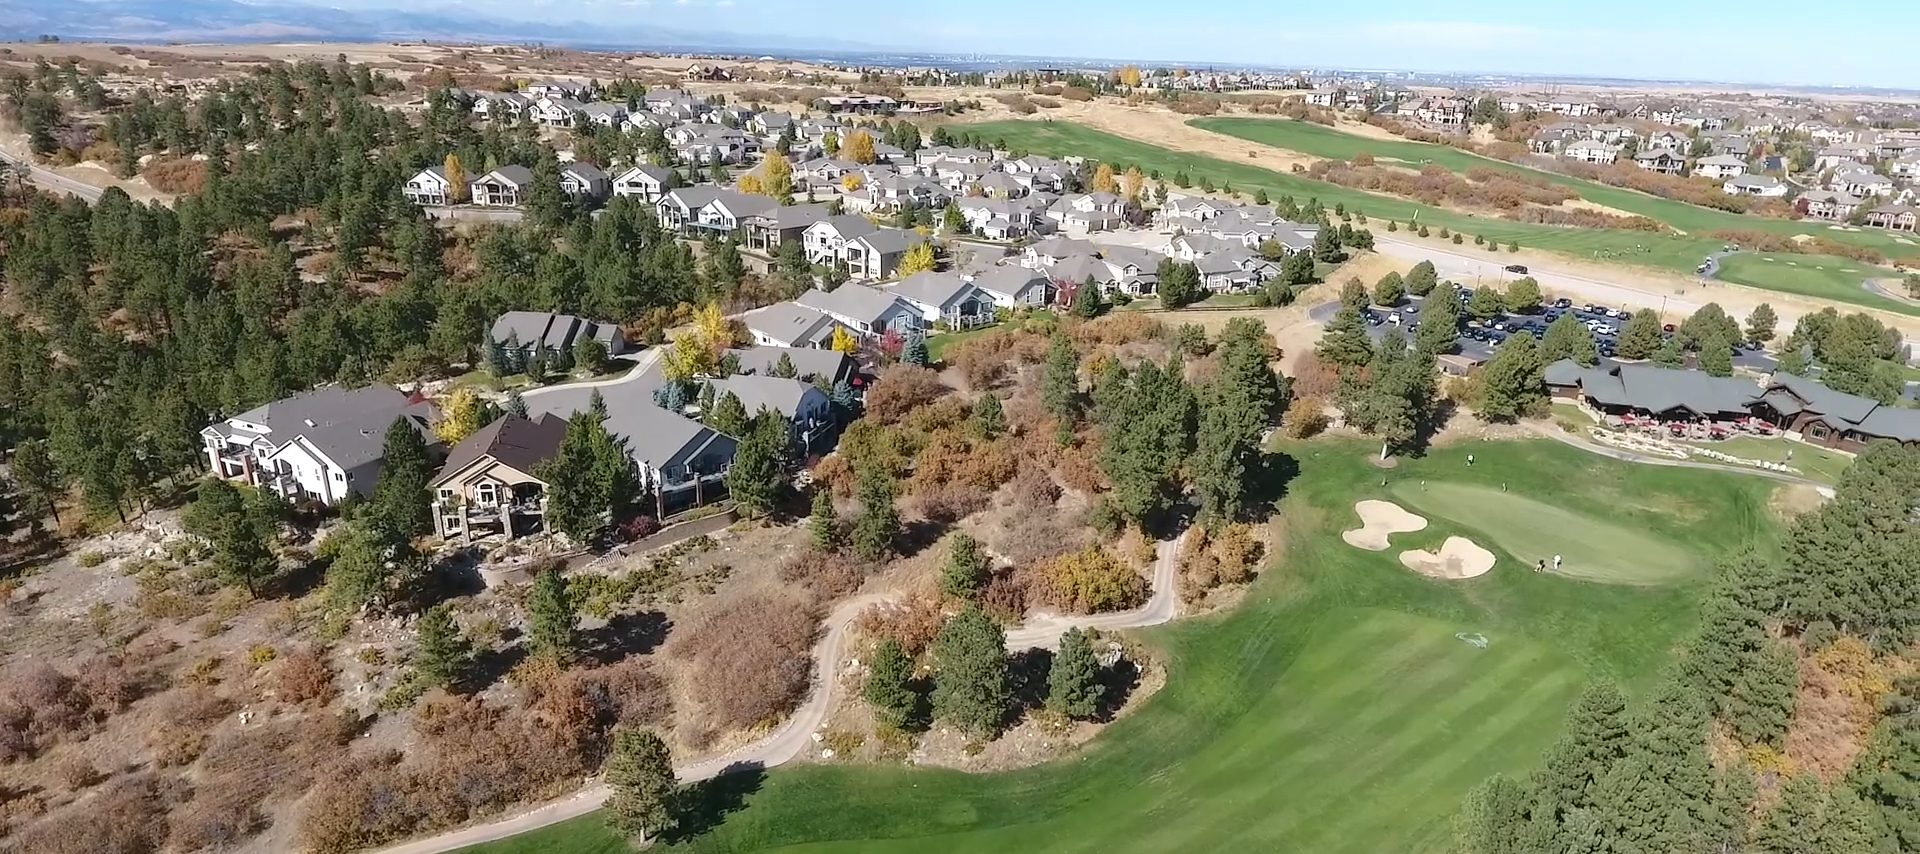 Aerial photo of the City of Castle Pines overlooking The Ridge golf course